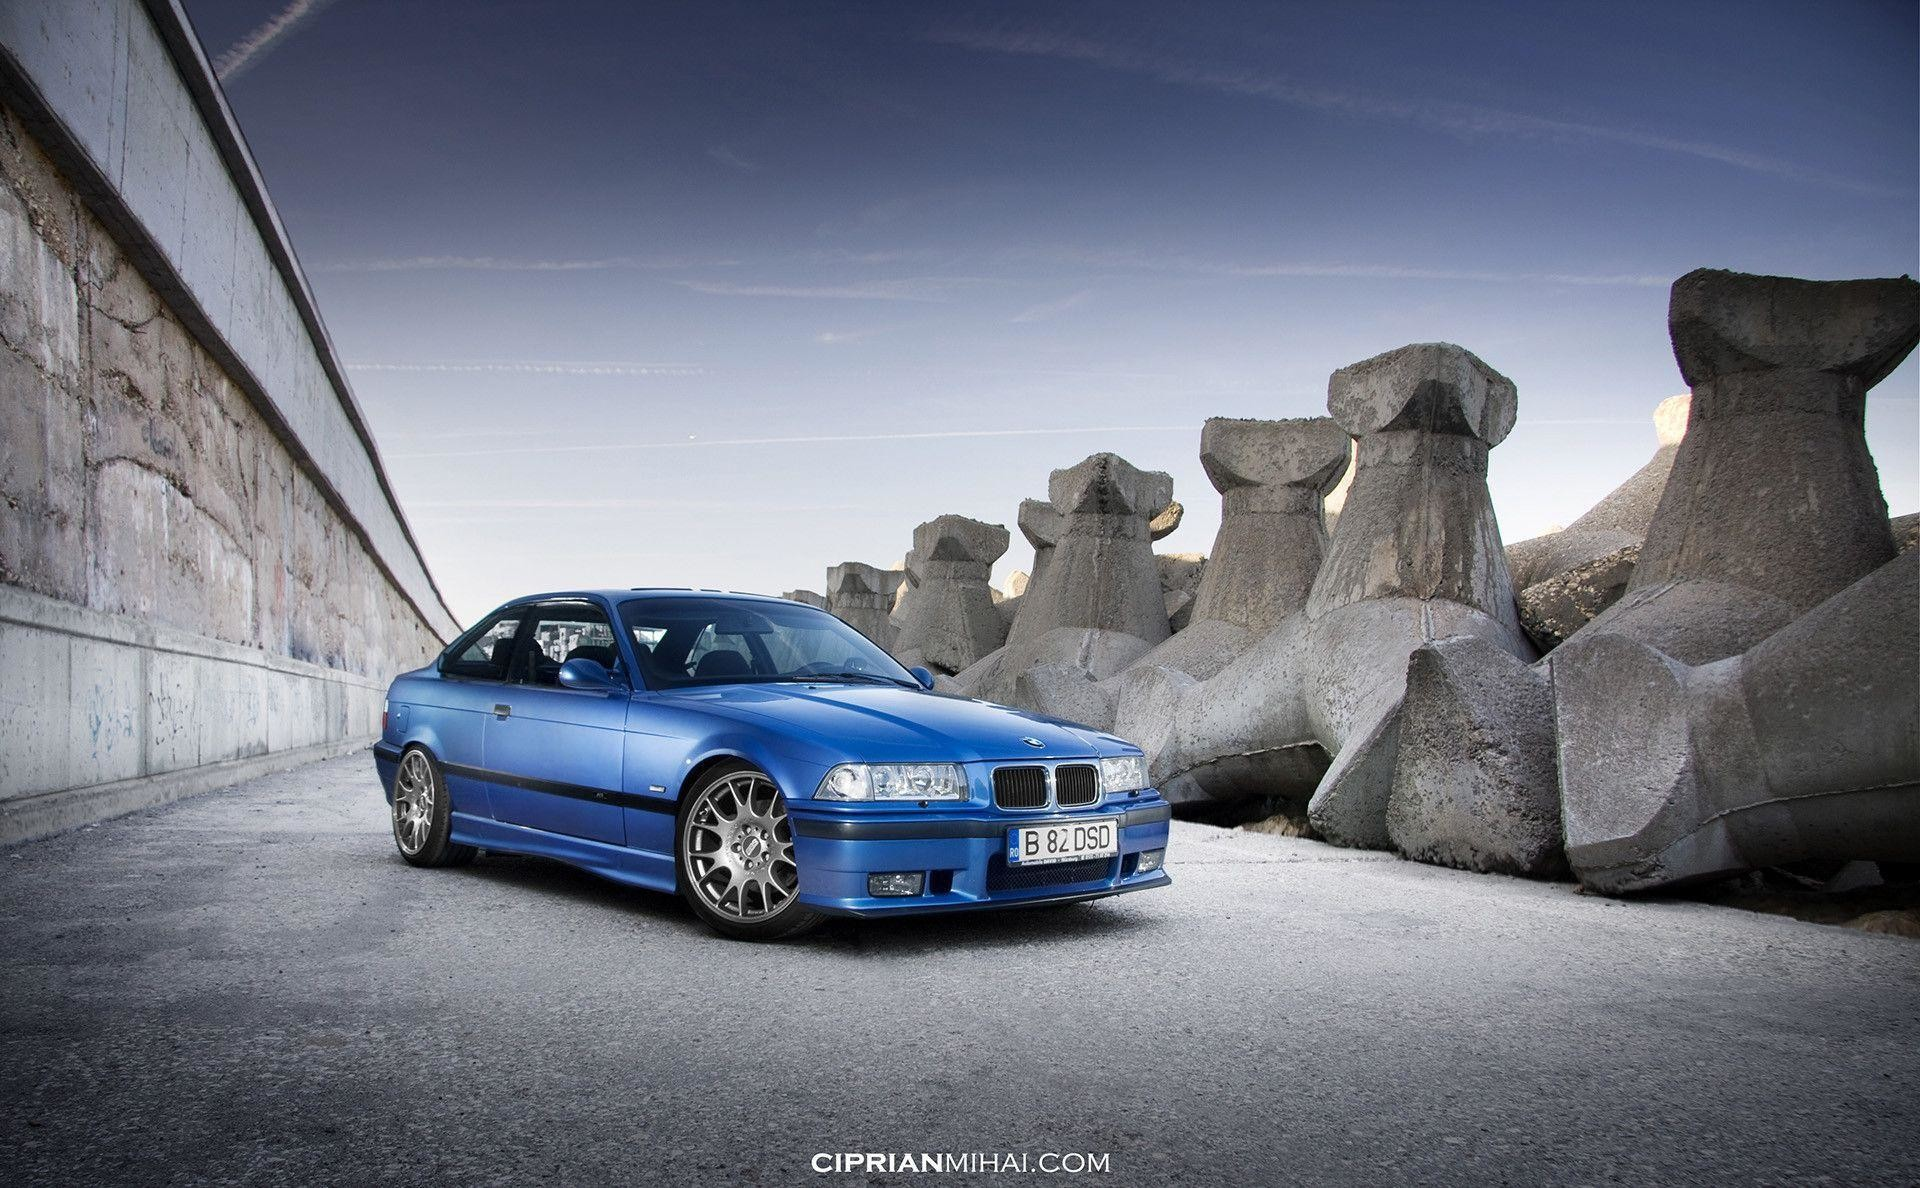 66 Bmw E36 Wallpapers on WallpaperPlay 1920x1188